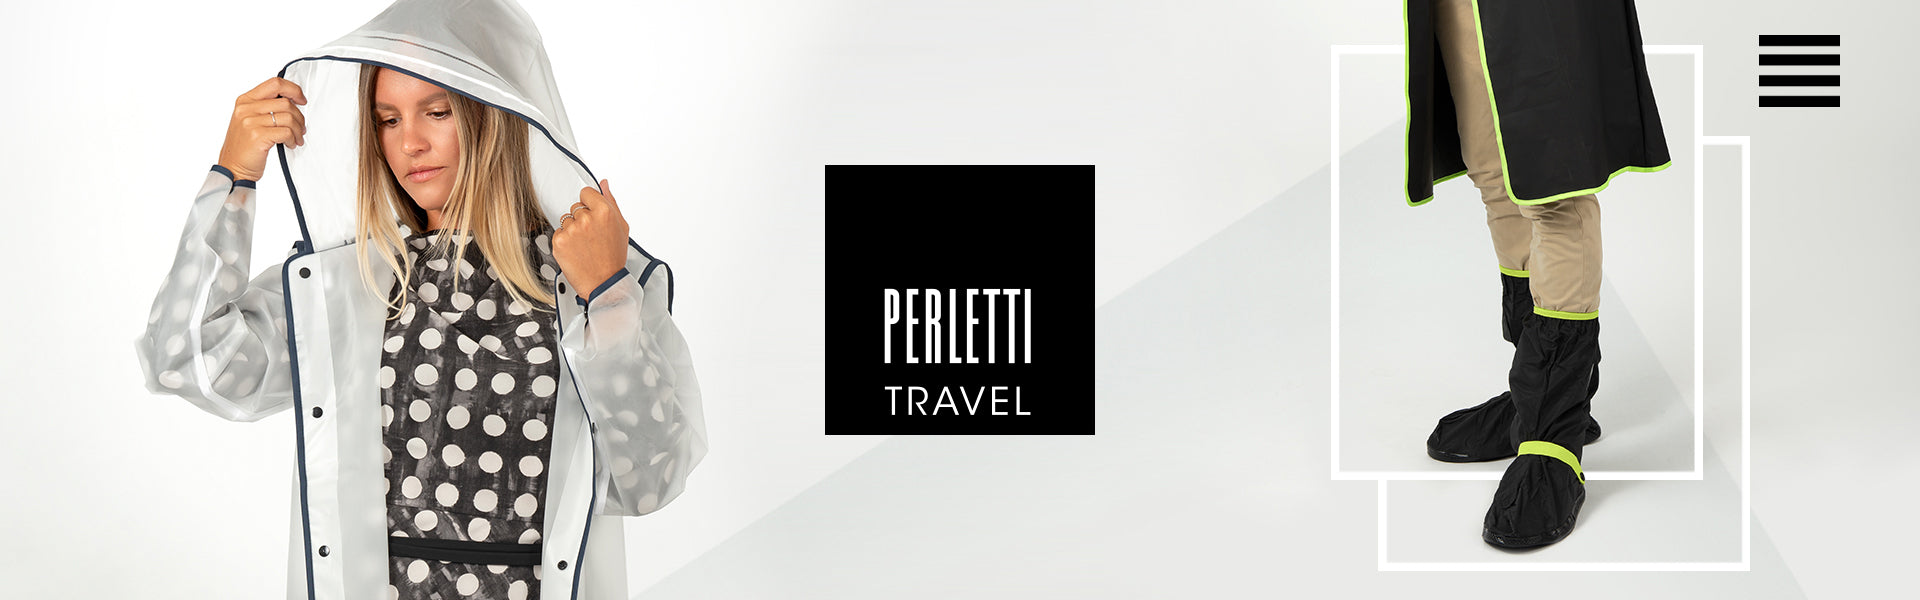 Perletti Travel